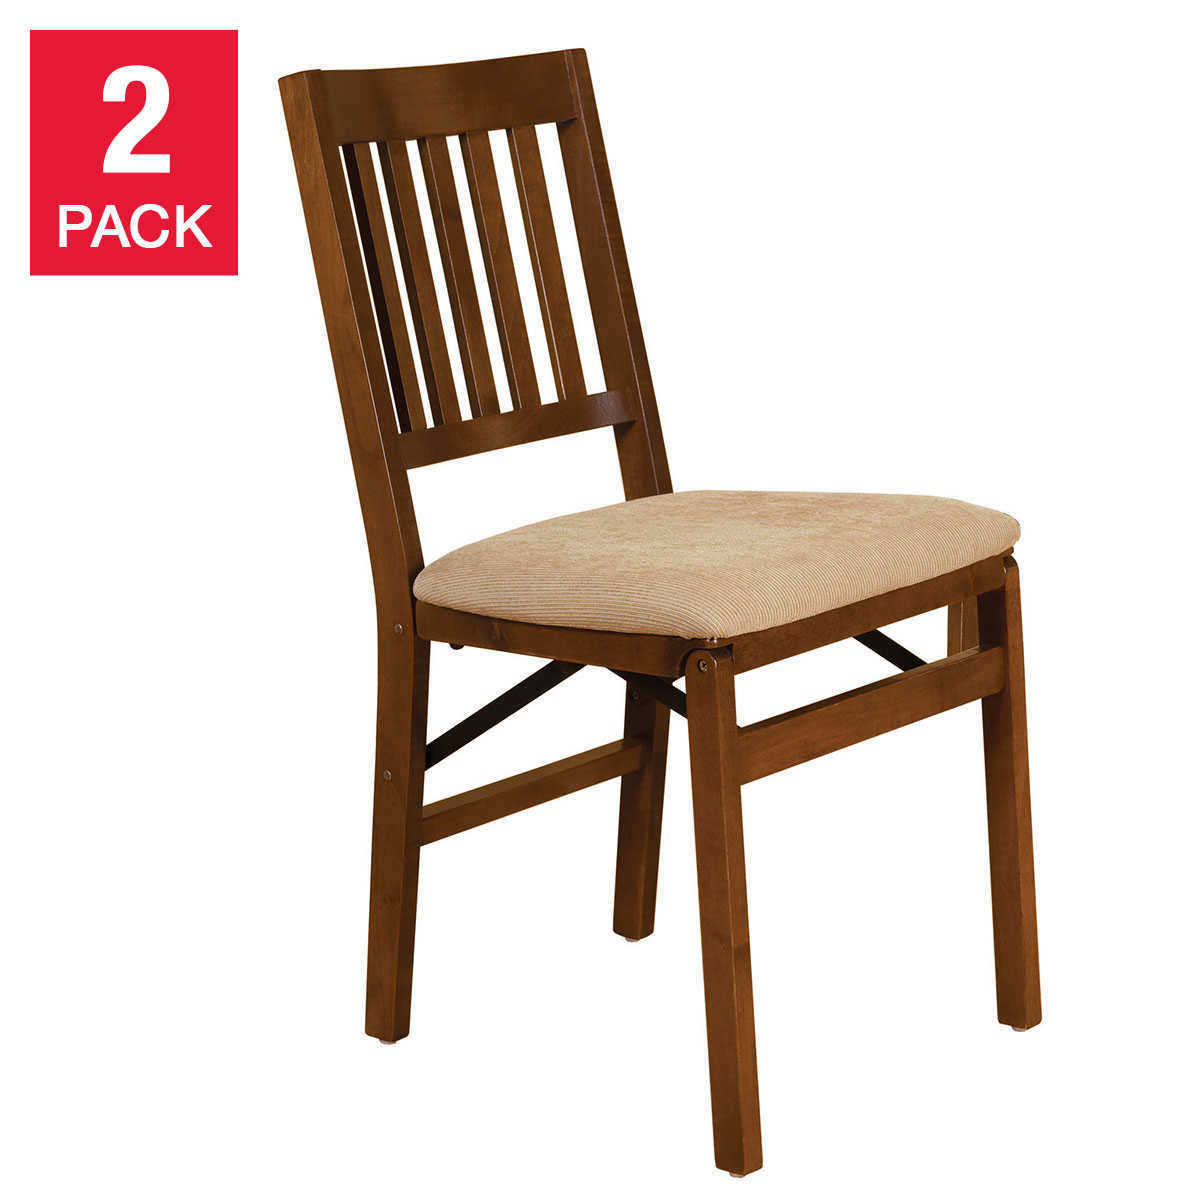 Stakmore Wood Upholstered Folding Chair Fruitwood 2 Pack